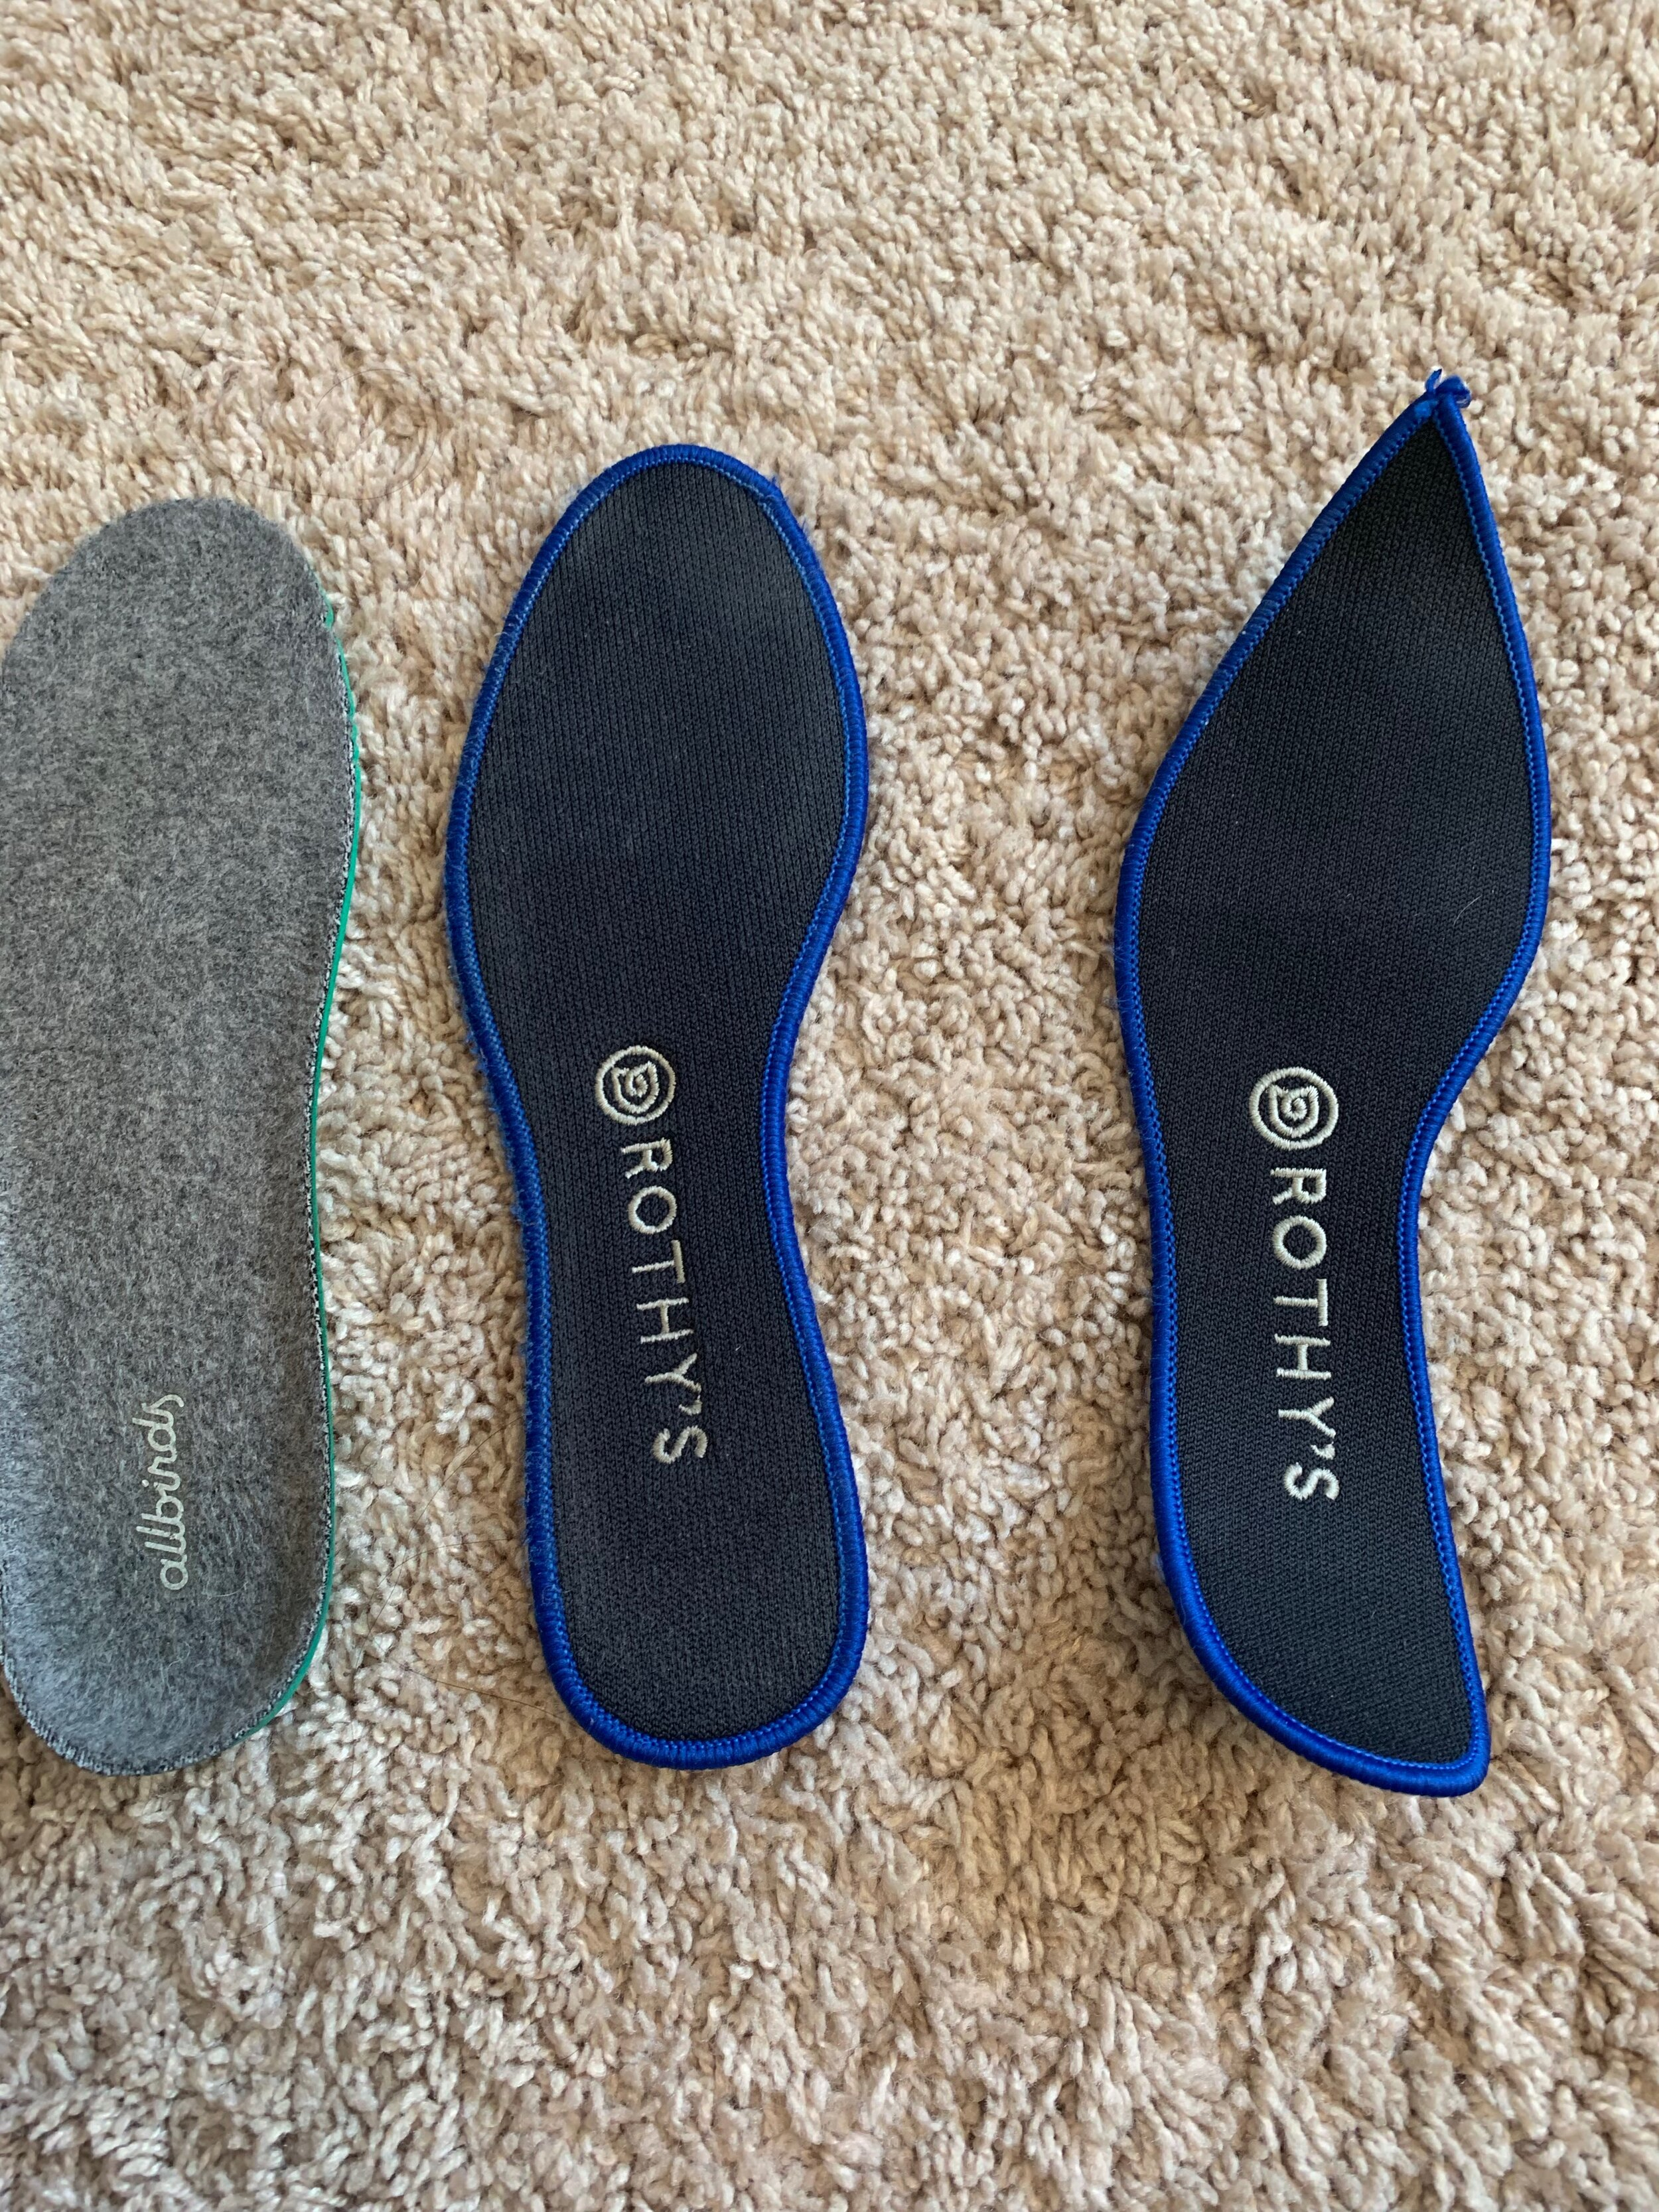 How I put my Allbirds insoles into my